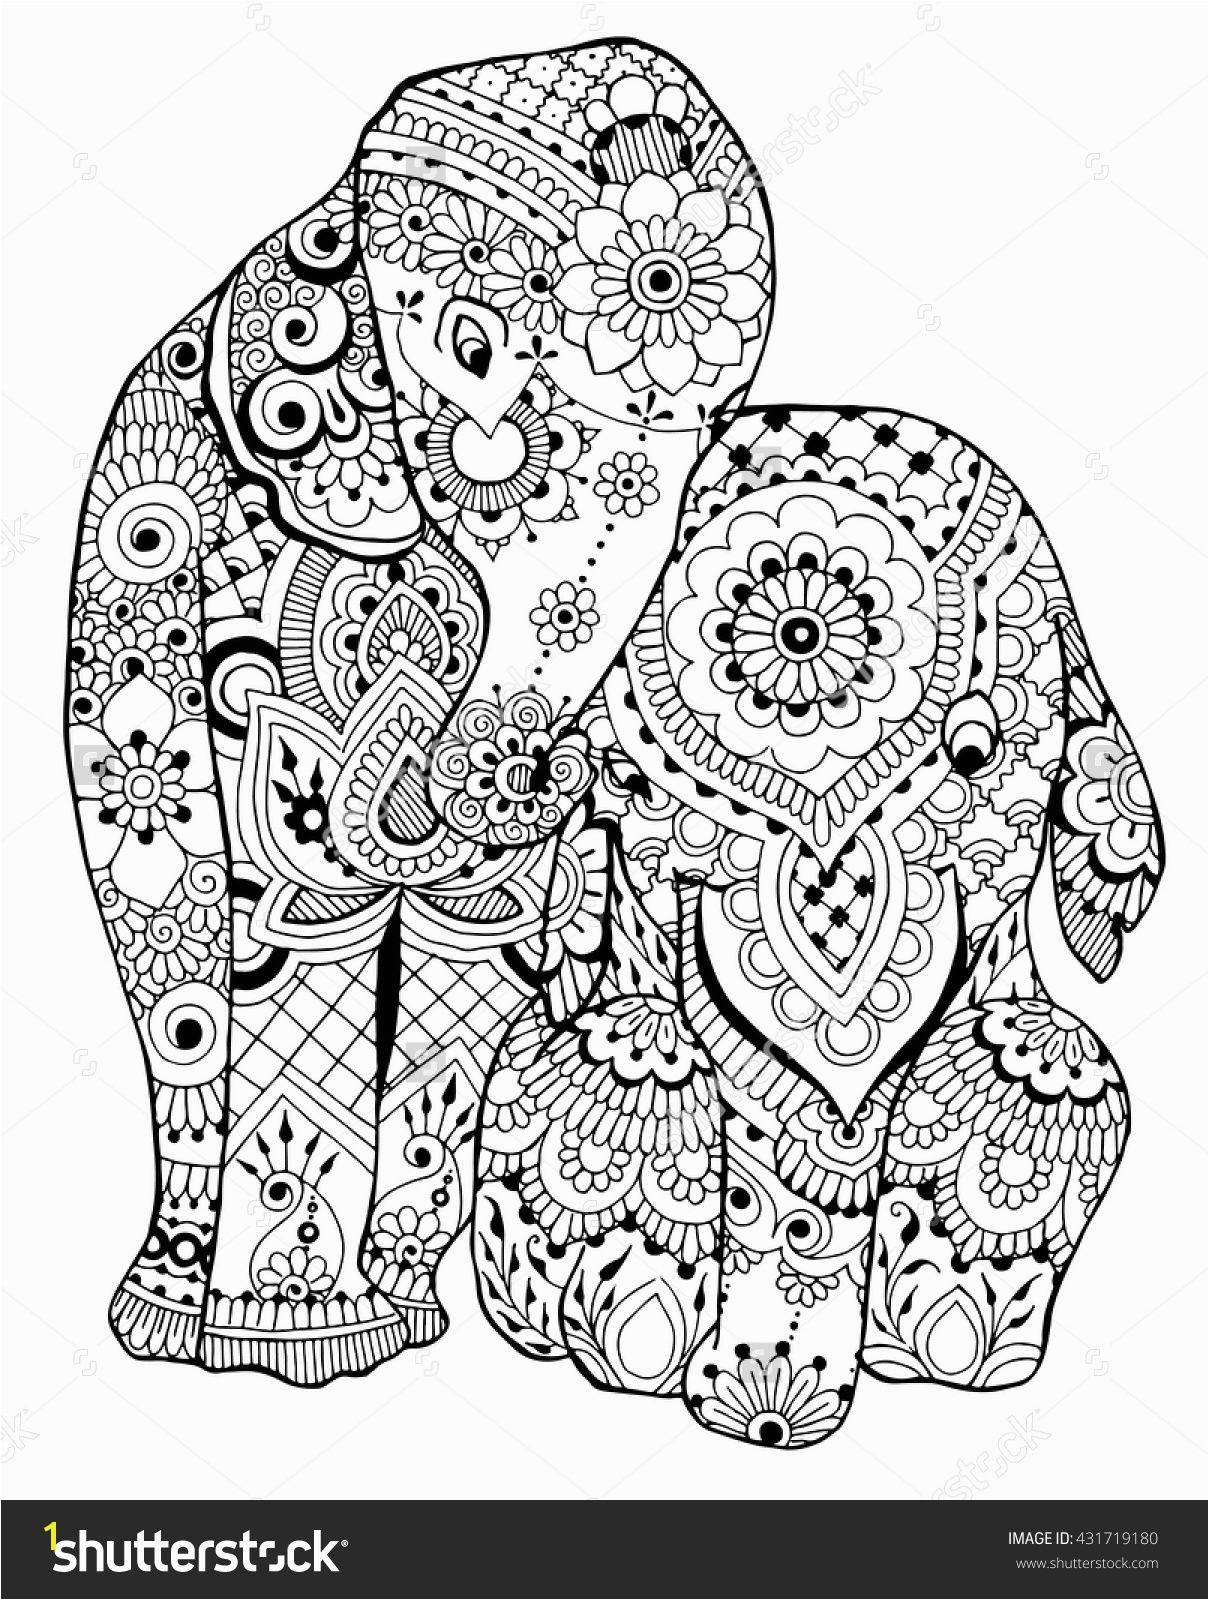 23 Elephant Mandala Coloring Pages Download - Coloring Sheets